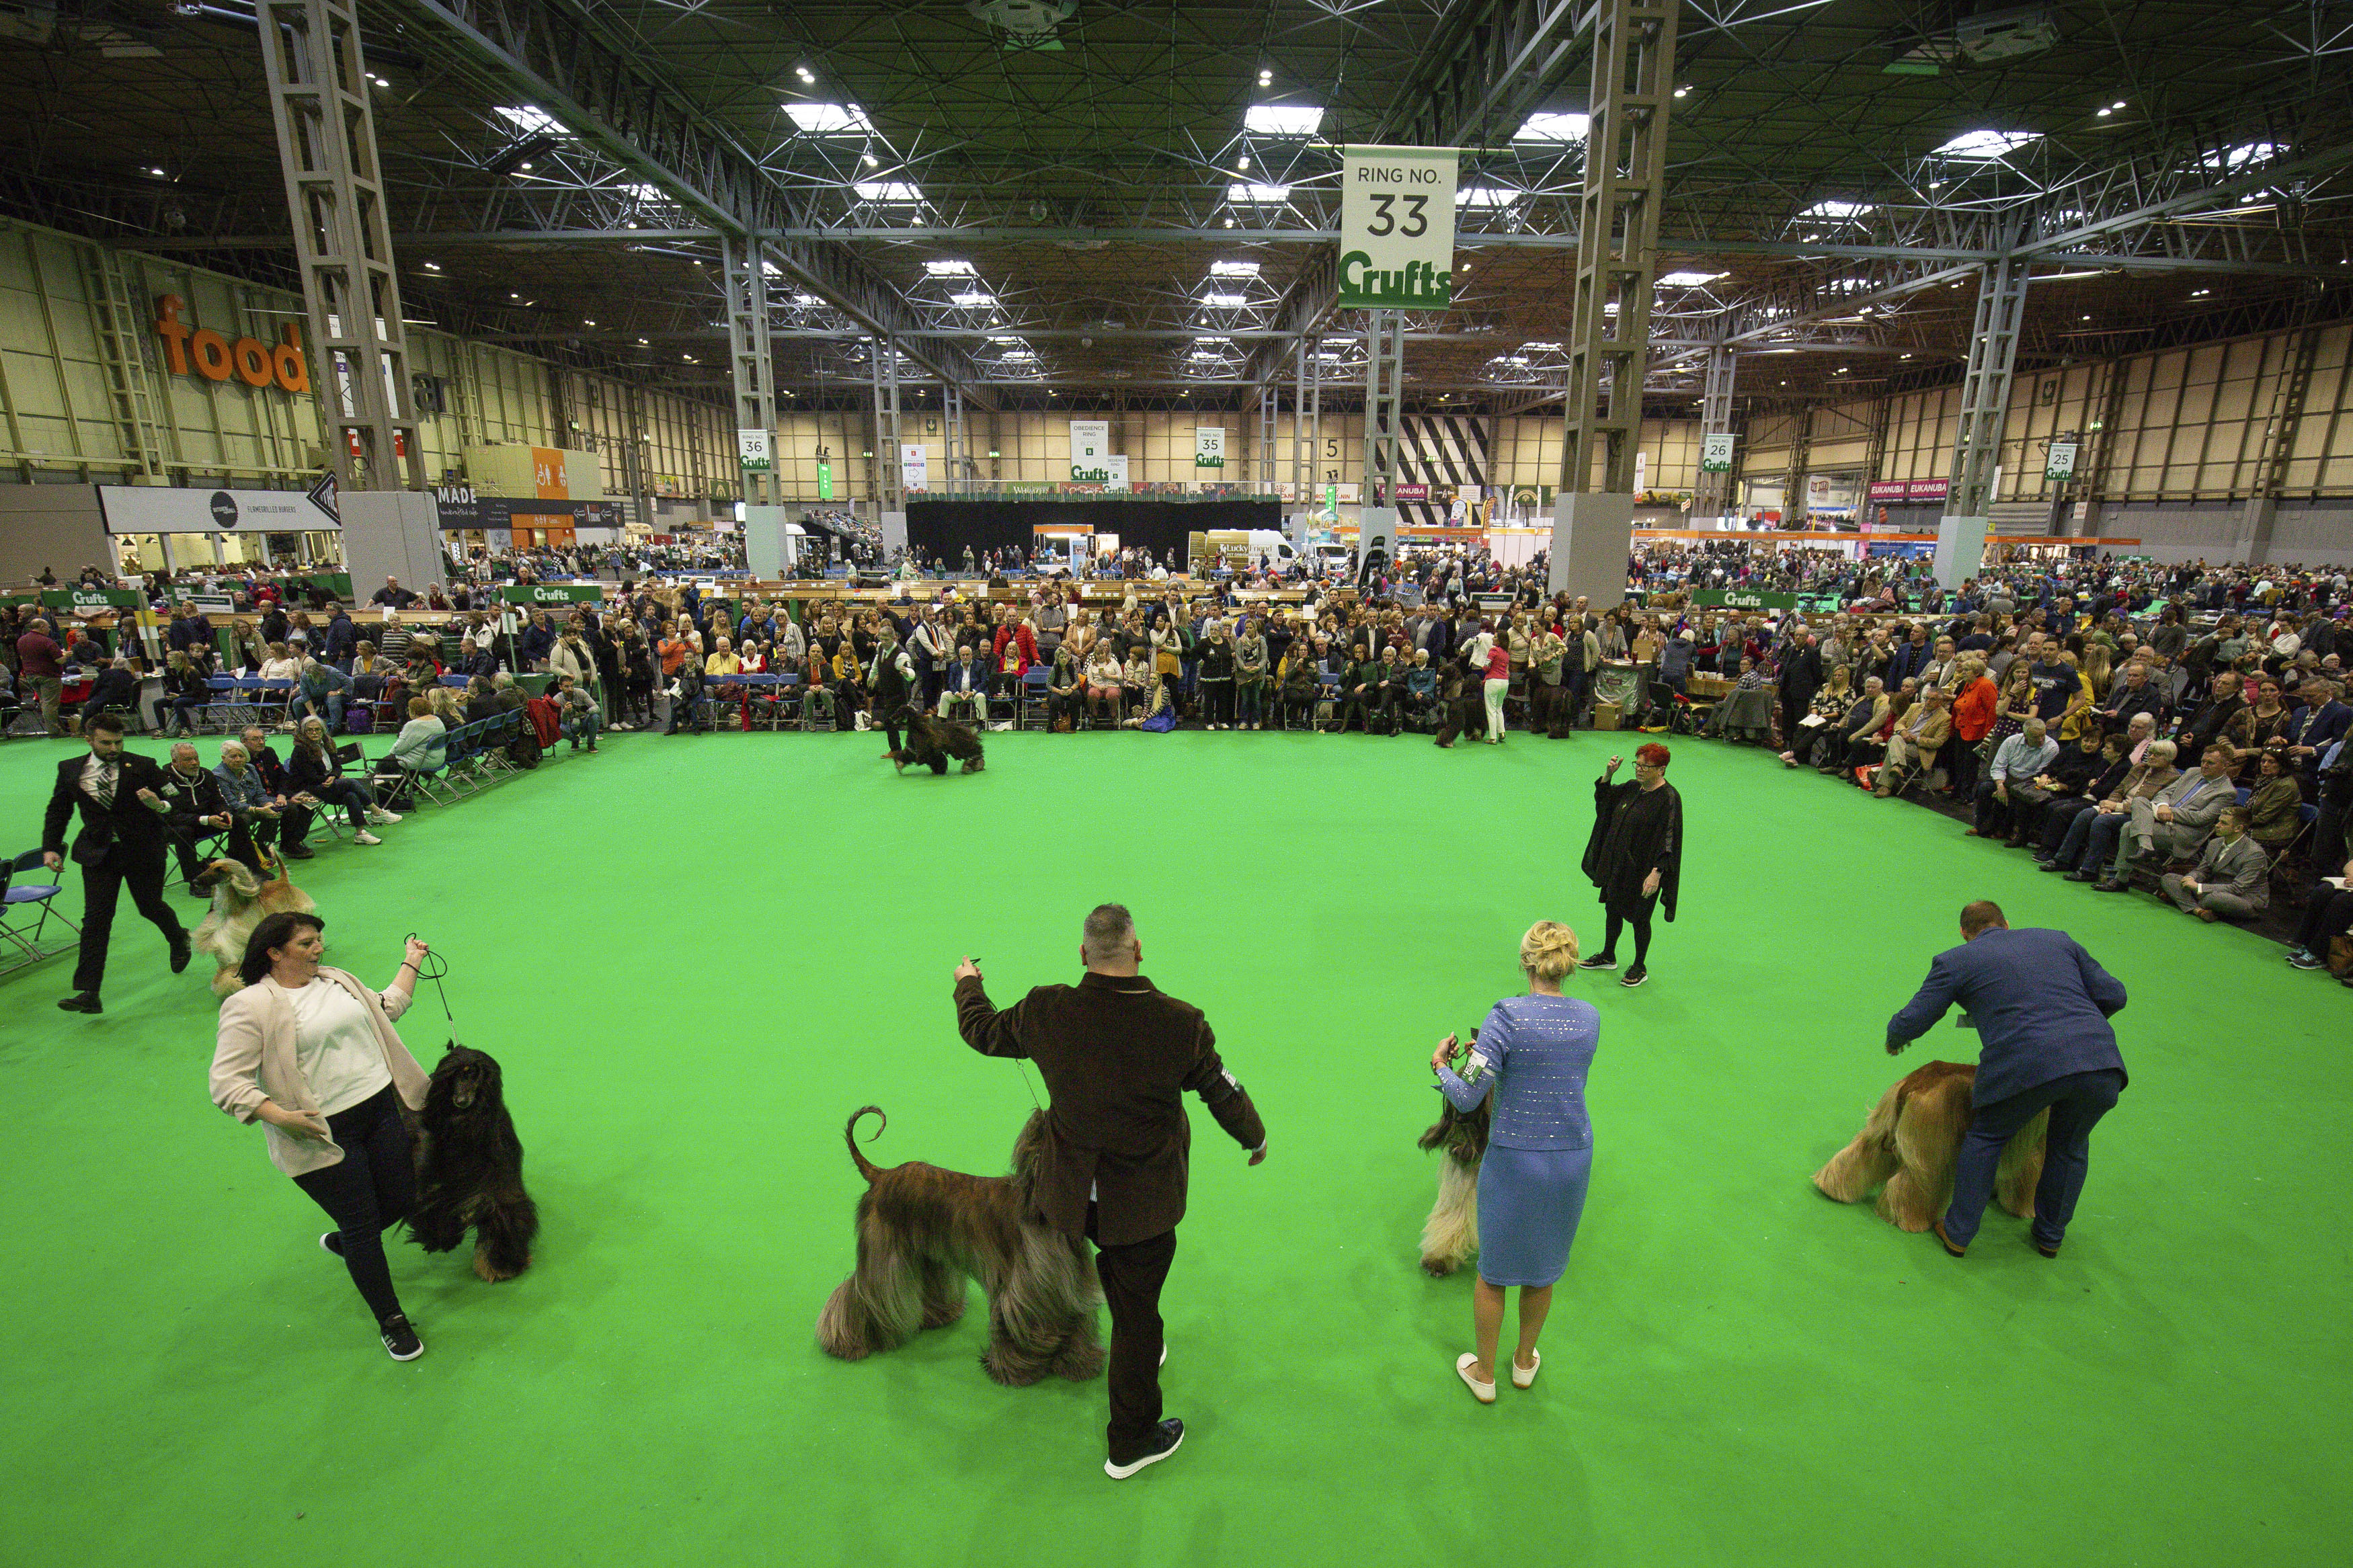 Dogs compete at the Birmingham National Exhibition Centre (NEC) during the final day of the Crufts Dog Show on March 8, 2020.